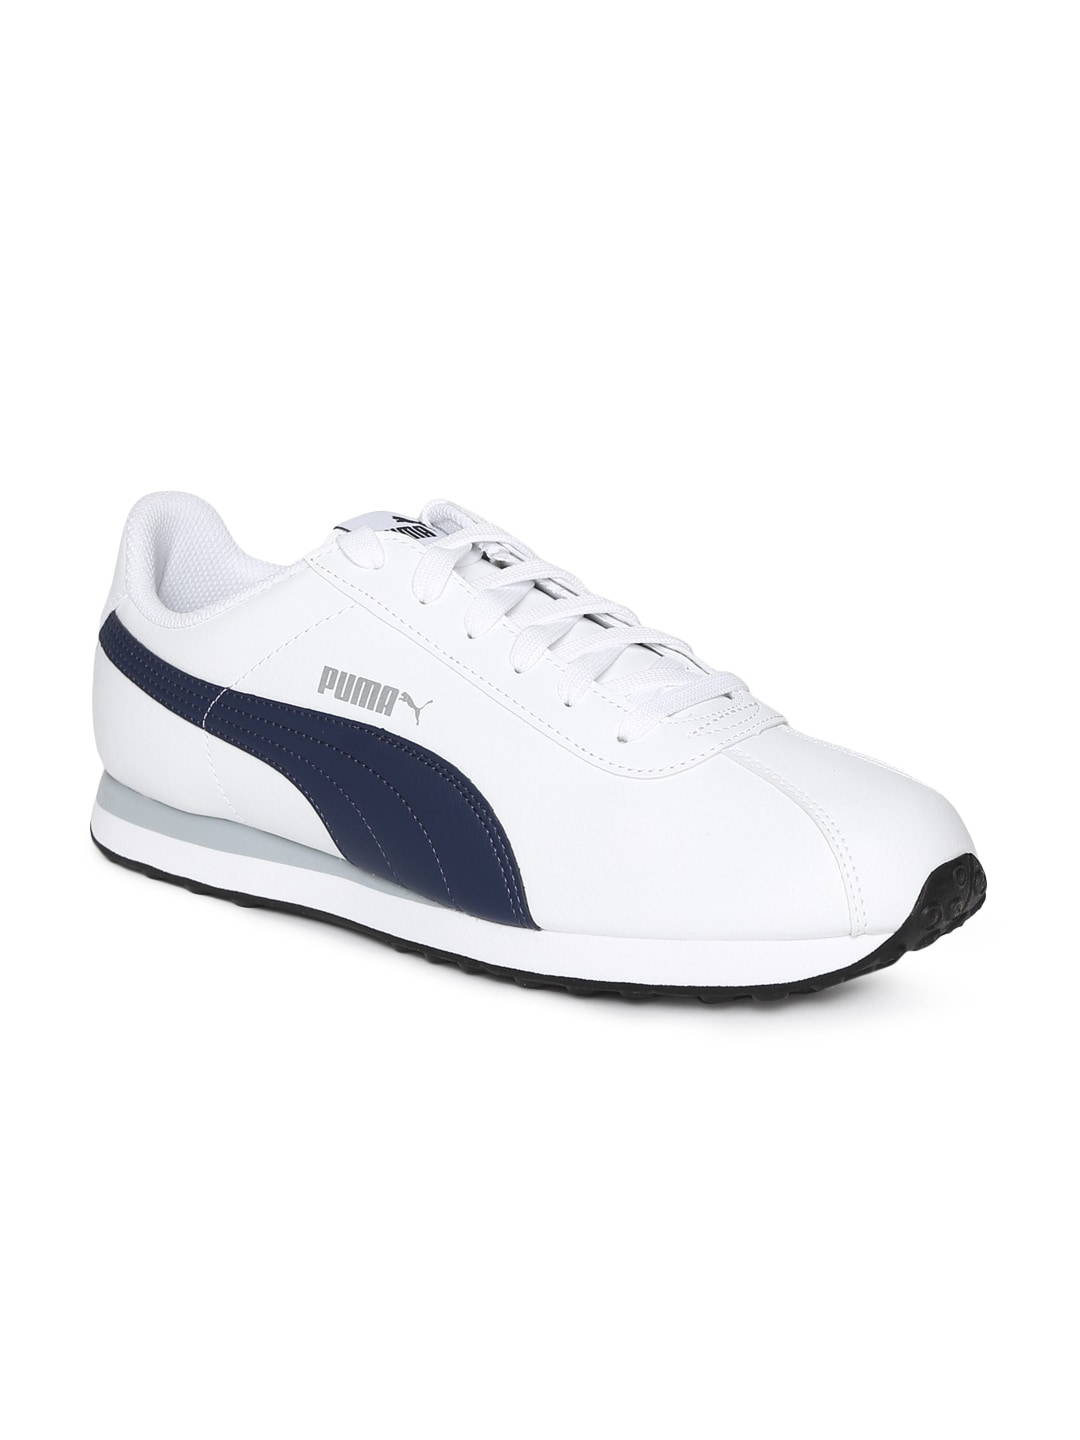 Buy Puma Men White Turin NL Sneakers - Casual Shoes for Men 4426013 ... f9016f2f7